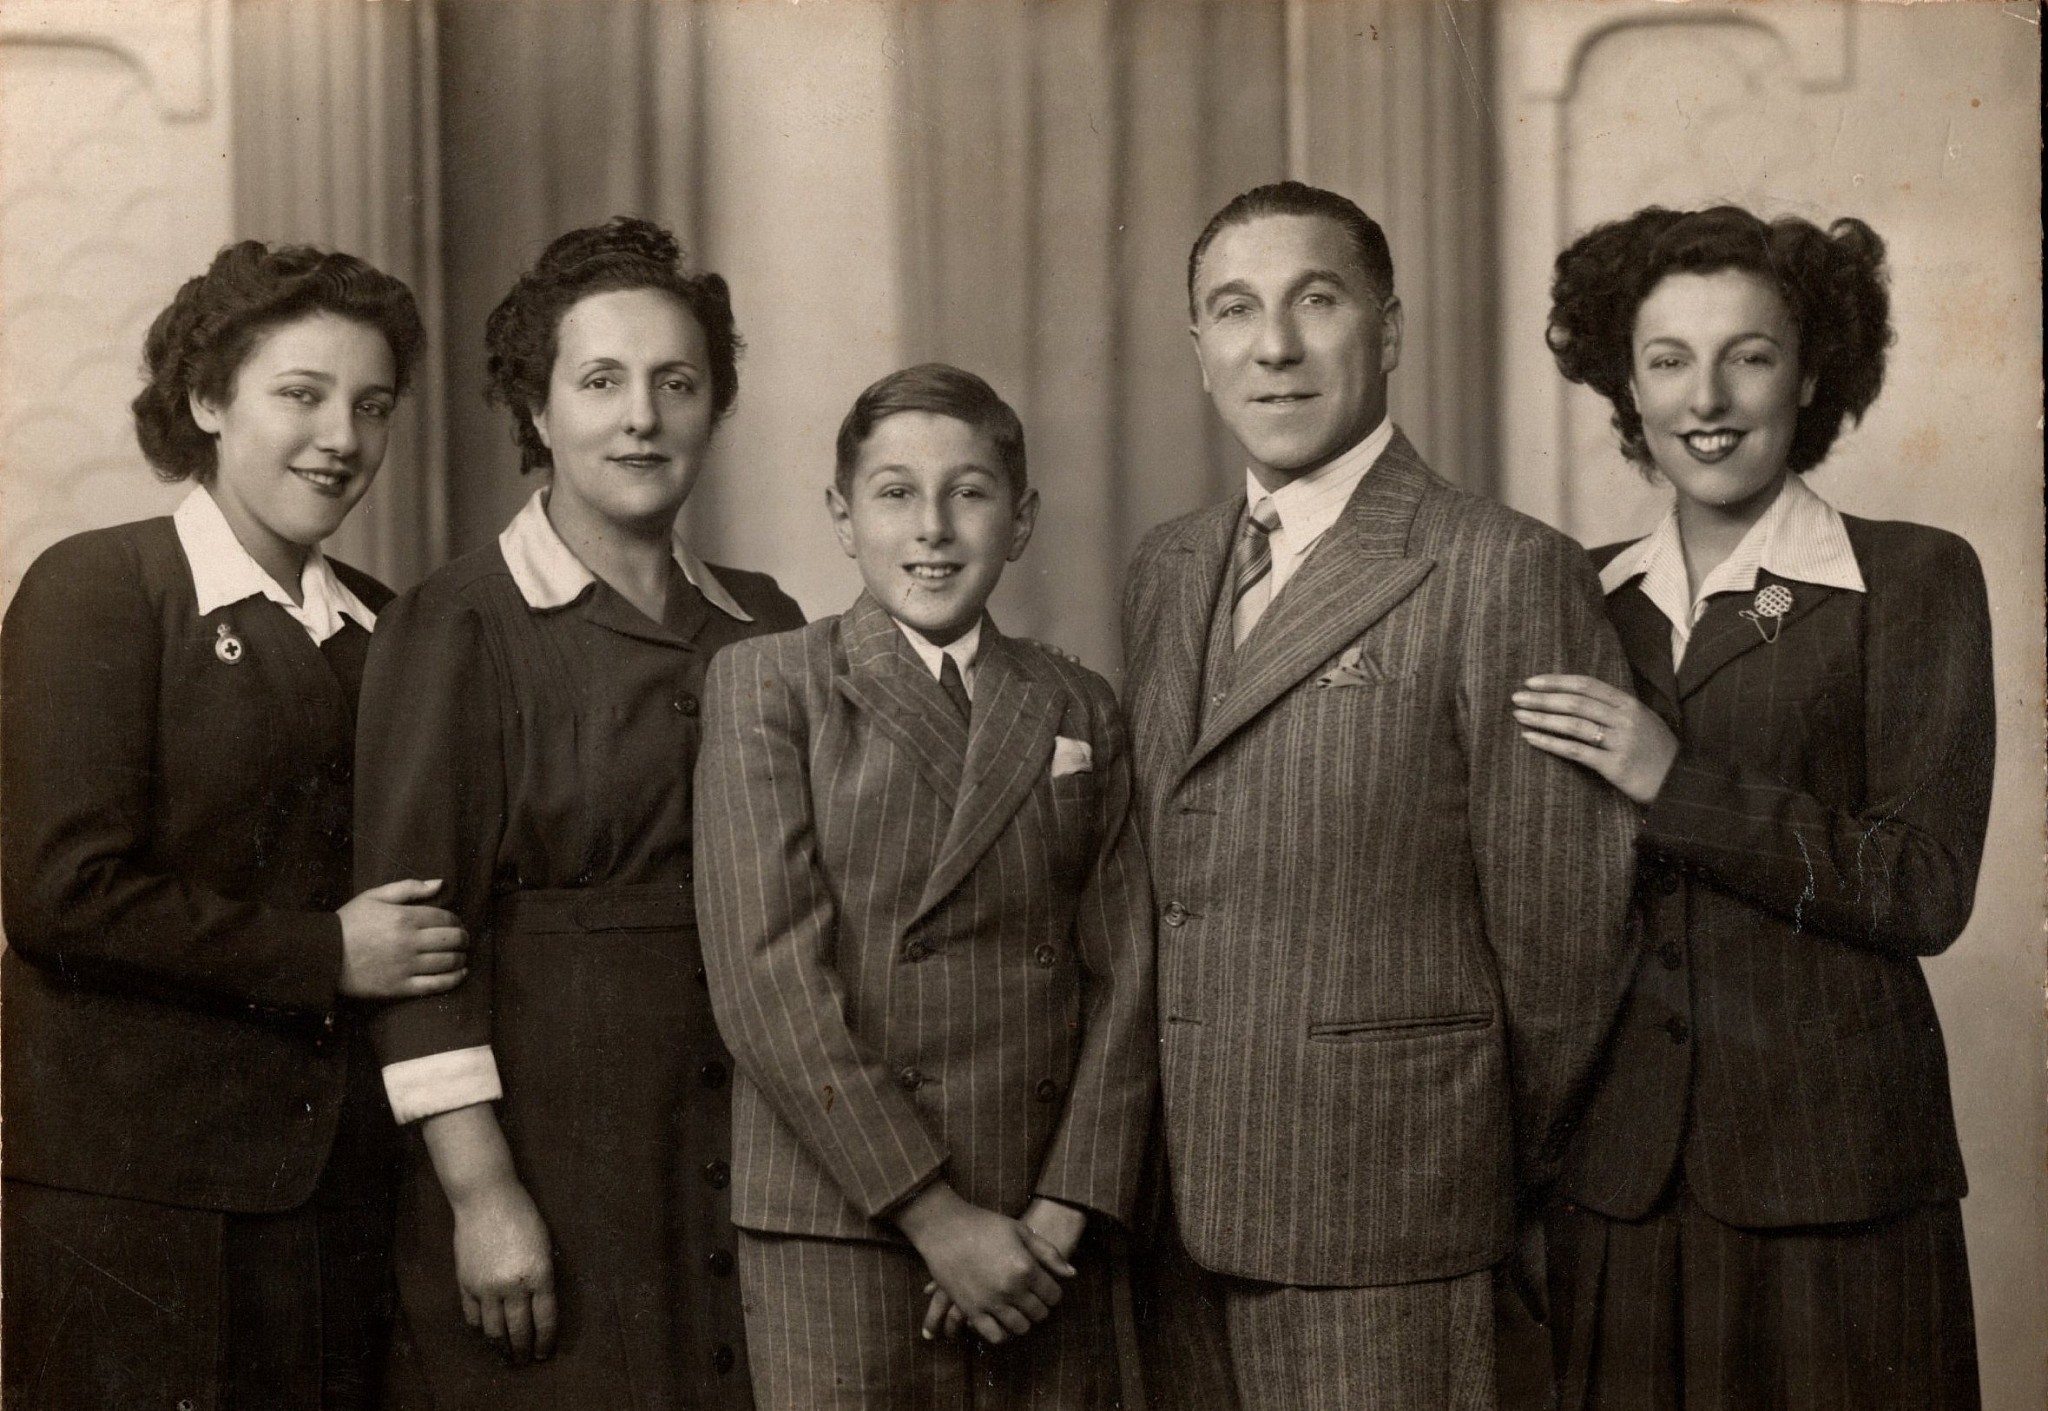 The Makofski family - three women with one man and one child